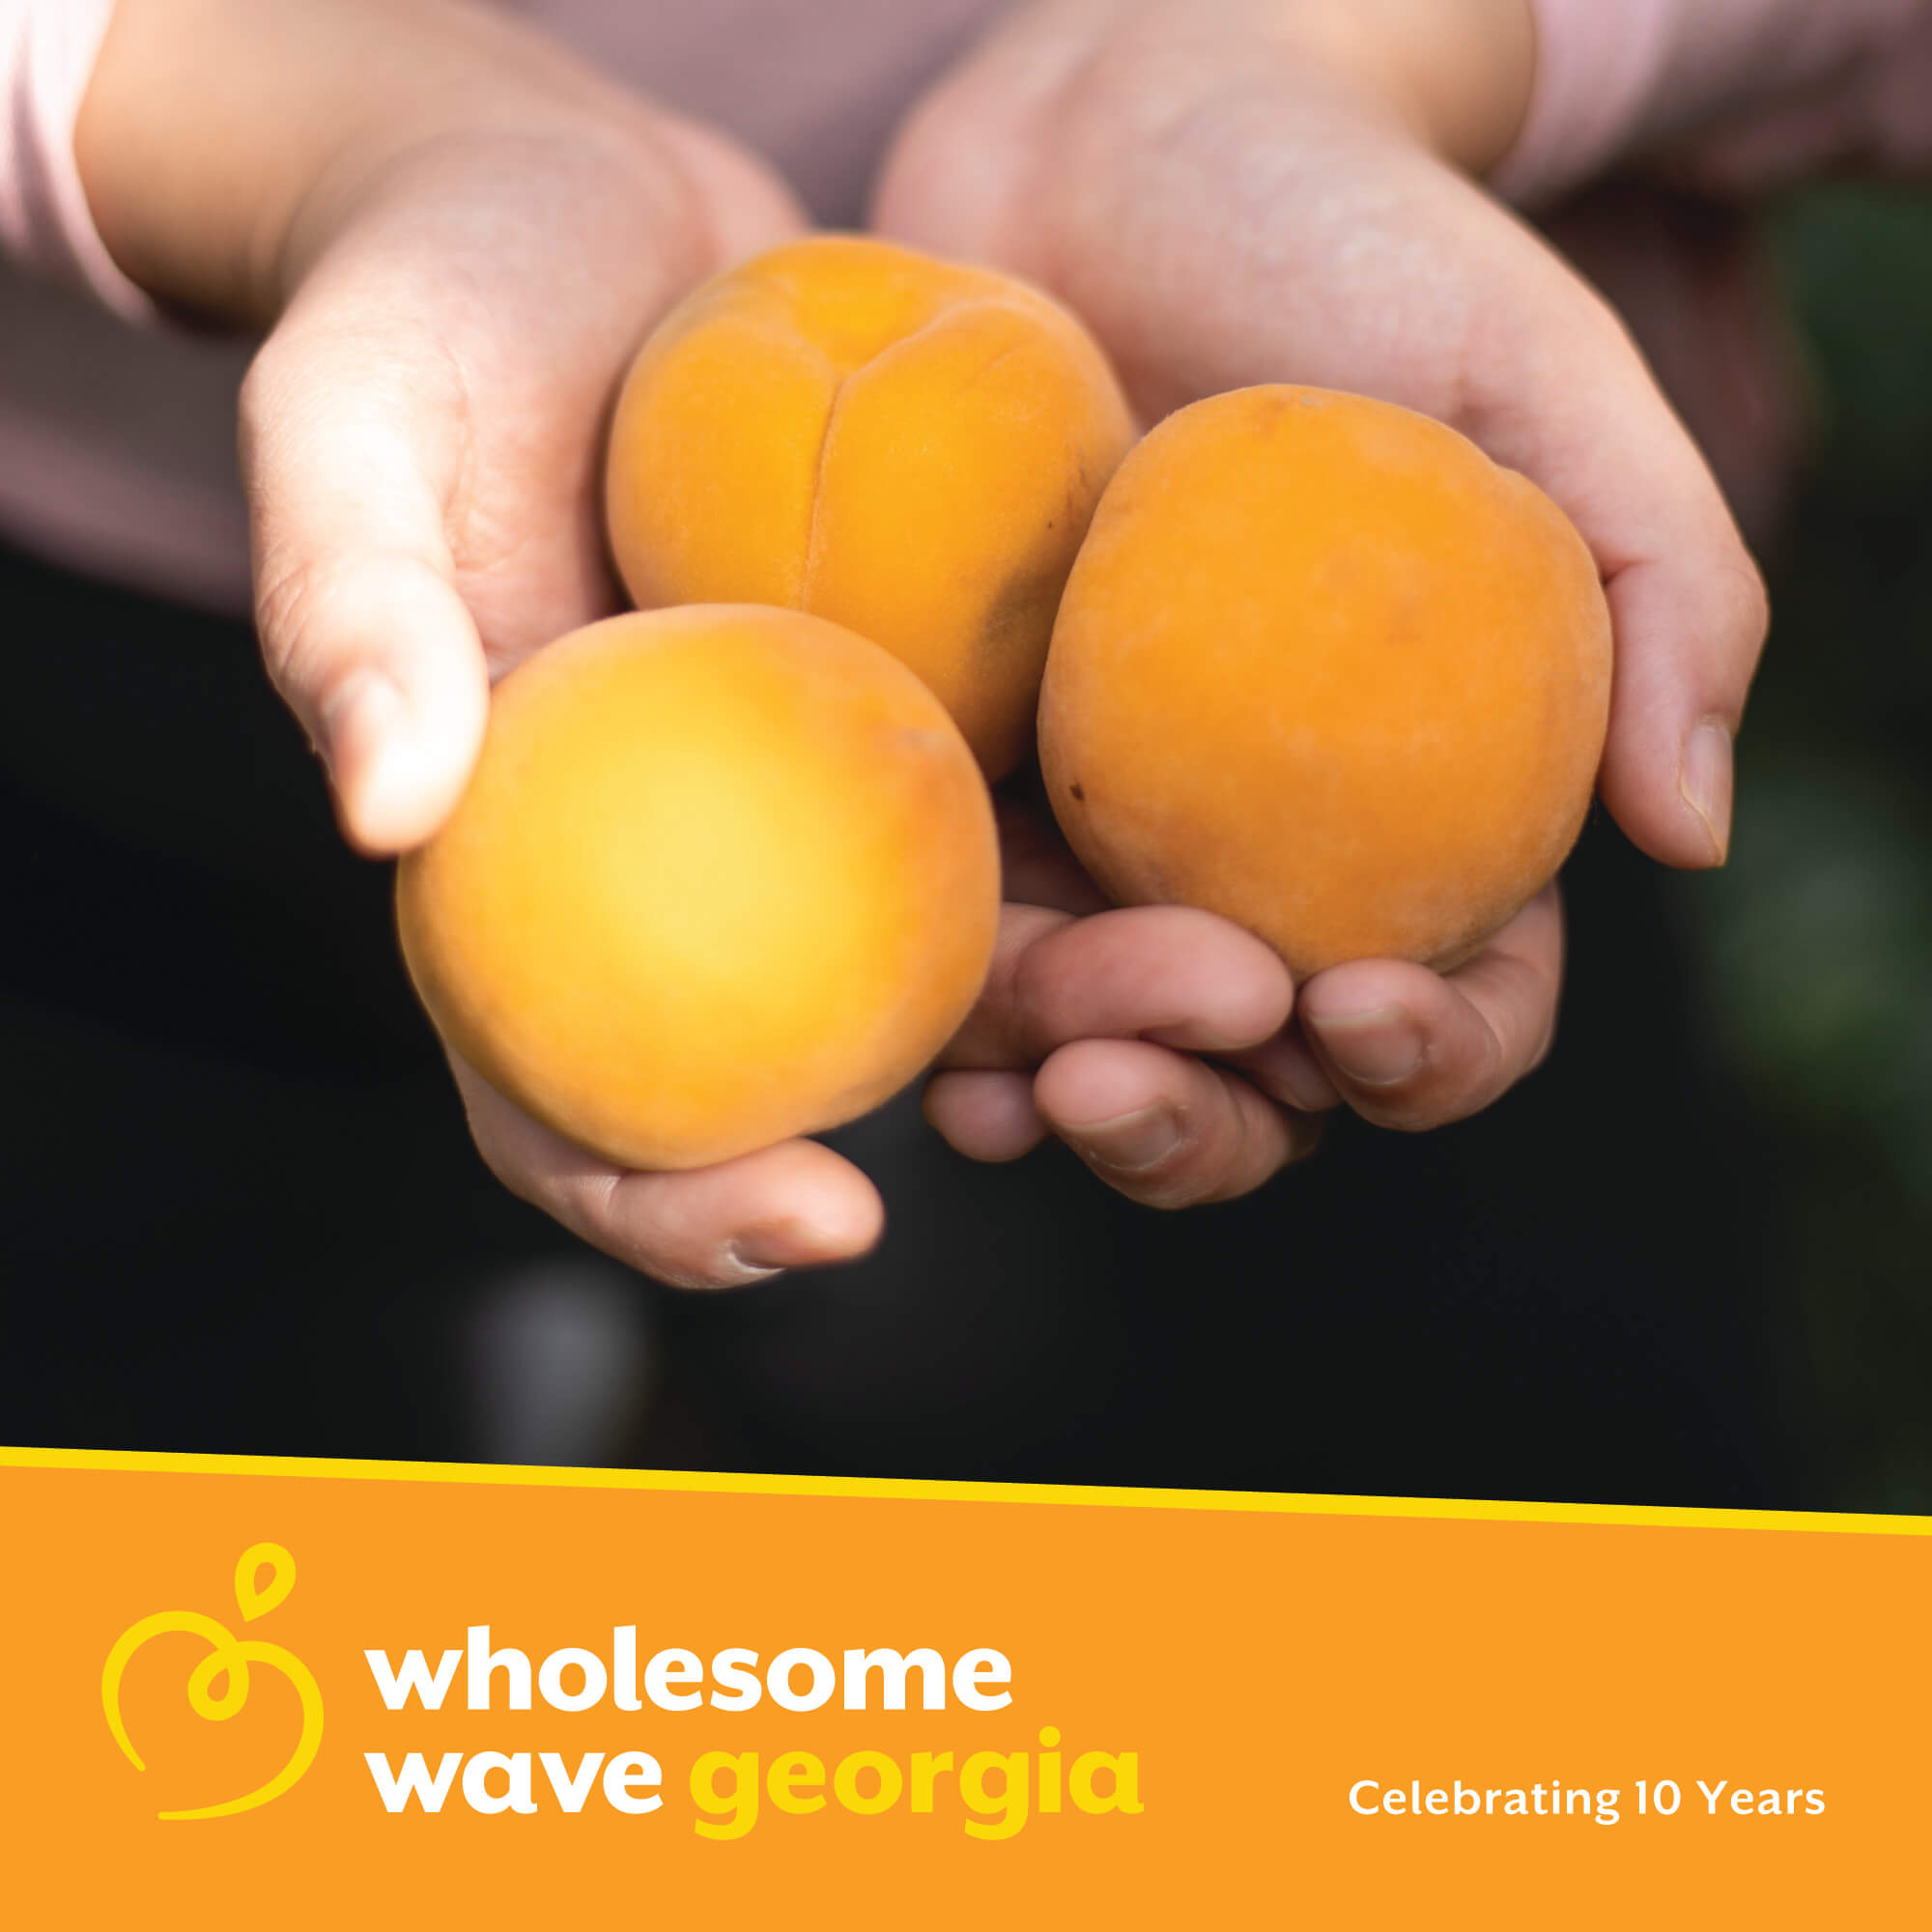 WHOLESOME WAVE GEORGIA - Brand Identity, Collateral